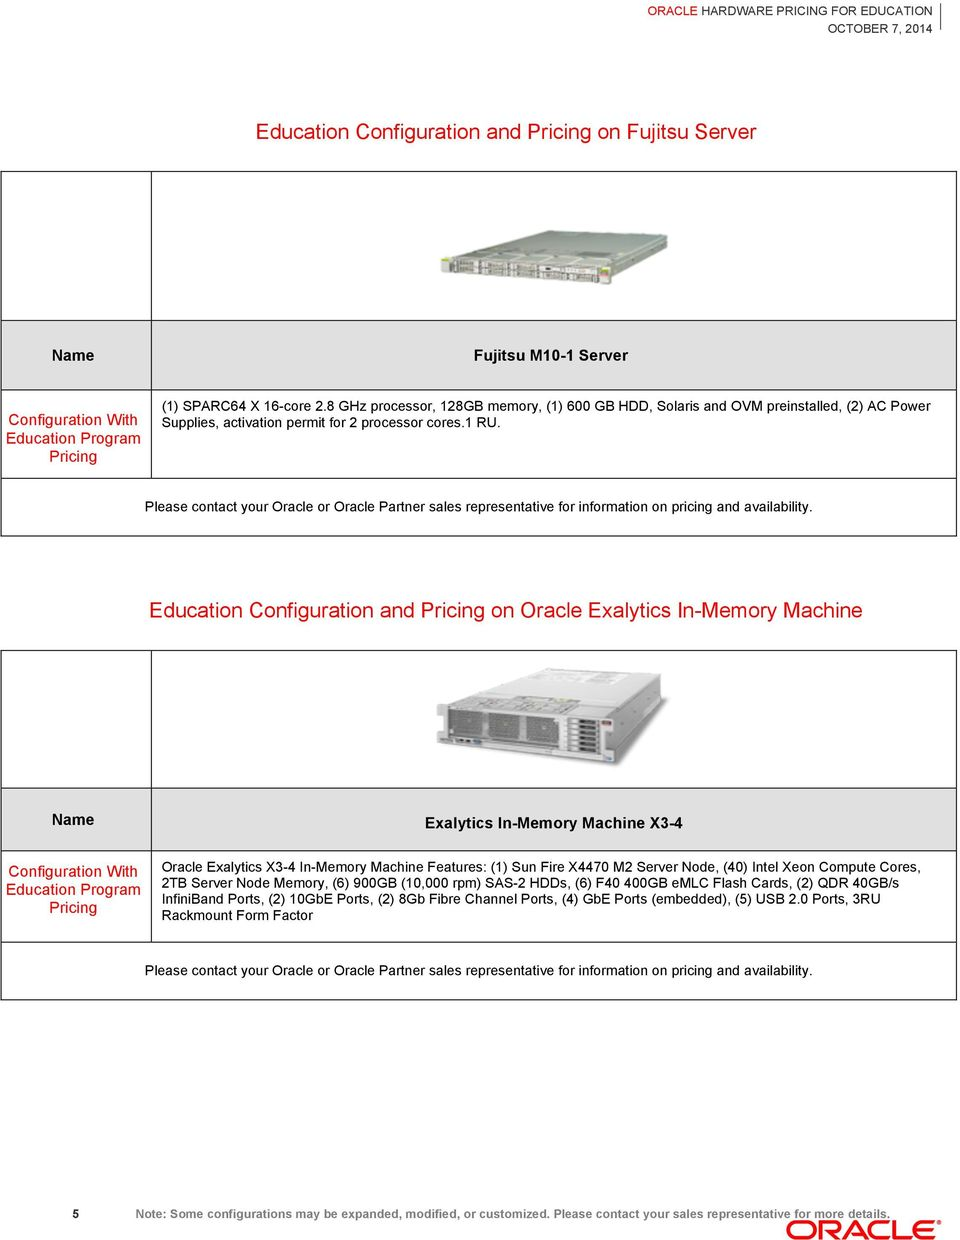 Education Configuration and on Oracle Exalytics In-Memory Machine Exalytics In-Memory Machine X3-4 Oracle Exalytics X3-4 In-Memory Machine Features: (1) Sun Fire X4470 M2 Server Node, (40) Intel Xeon